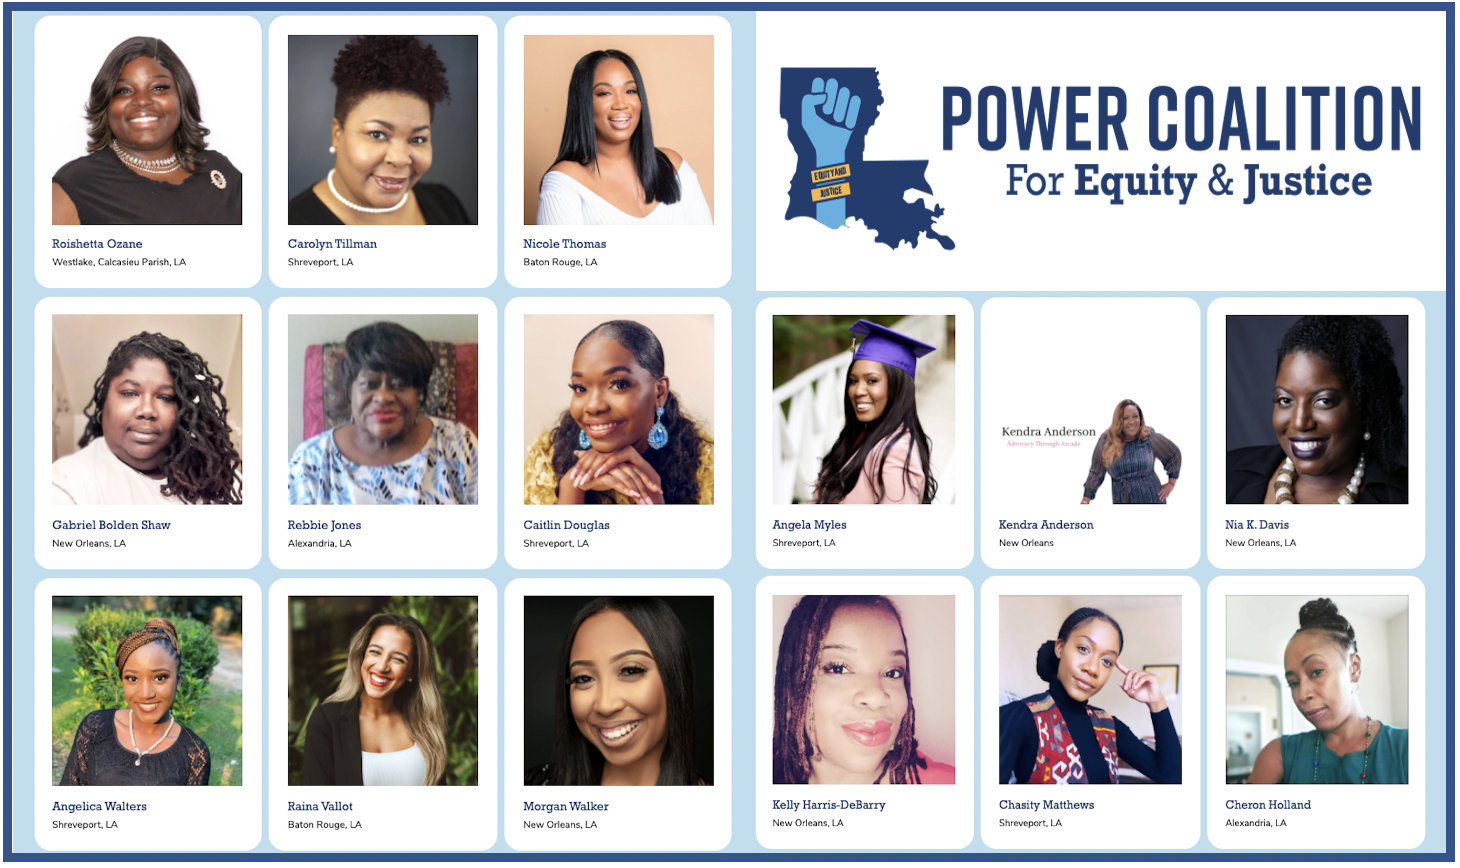 Power Coalition for Equity and Justice supports women community organizers in Louisiana.